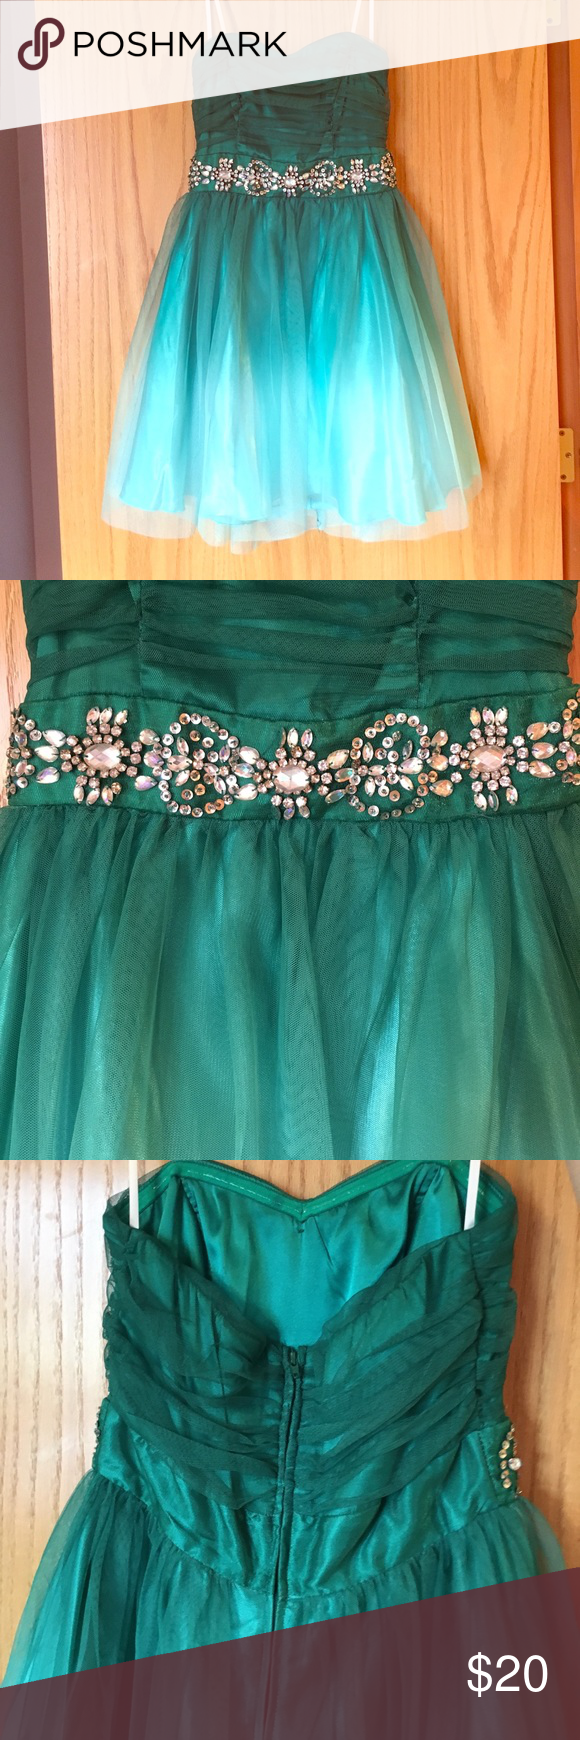 Green ombré short homecoming dress pinterest short homecoming